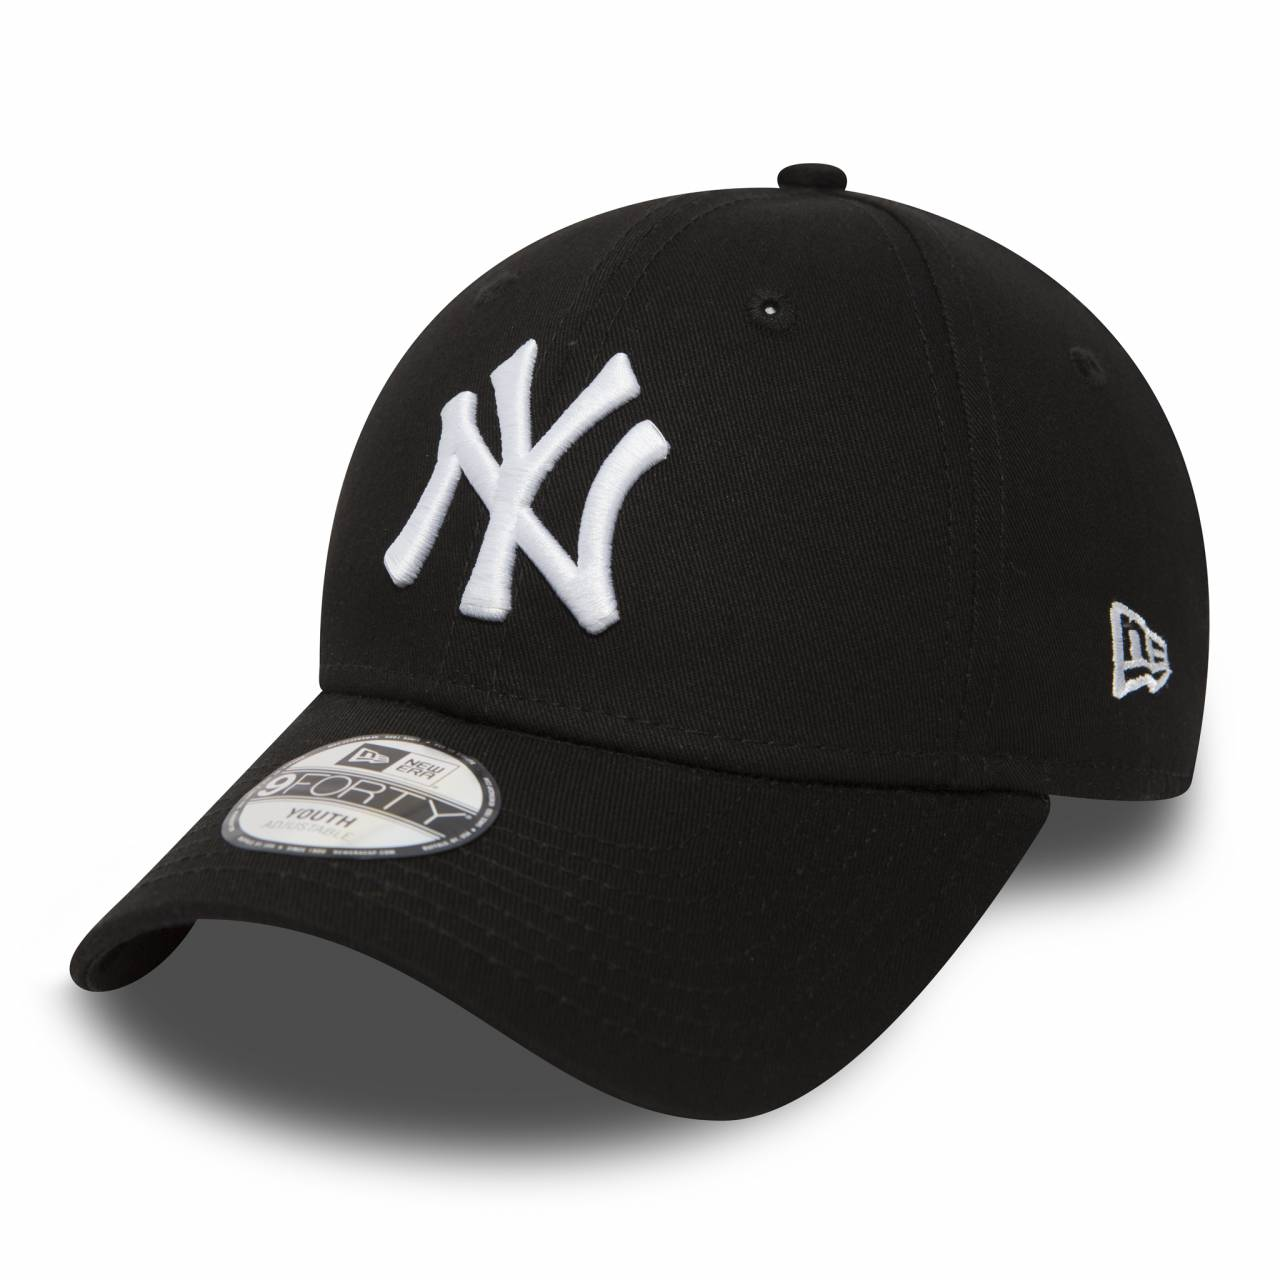 10879076 9FORTY KIDS NEW YORK YANKEES BLACK/WHITE